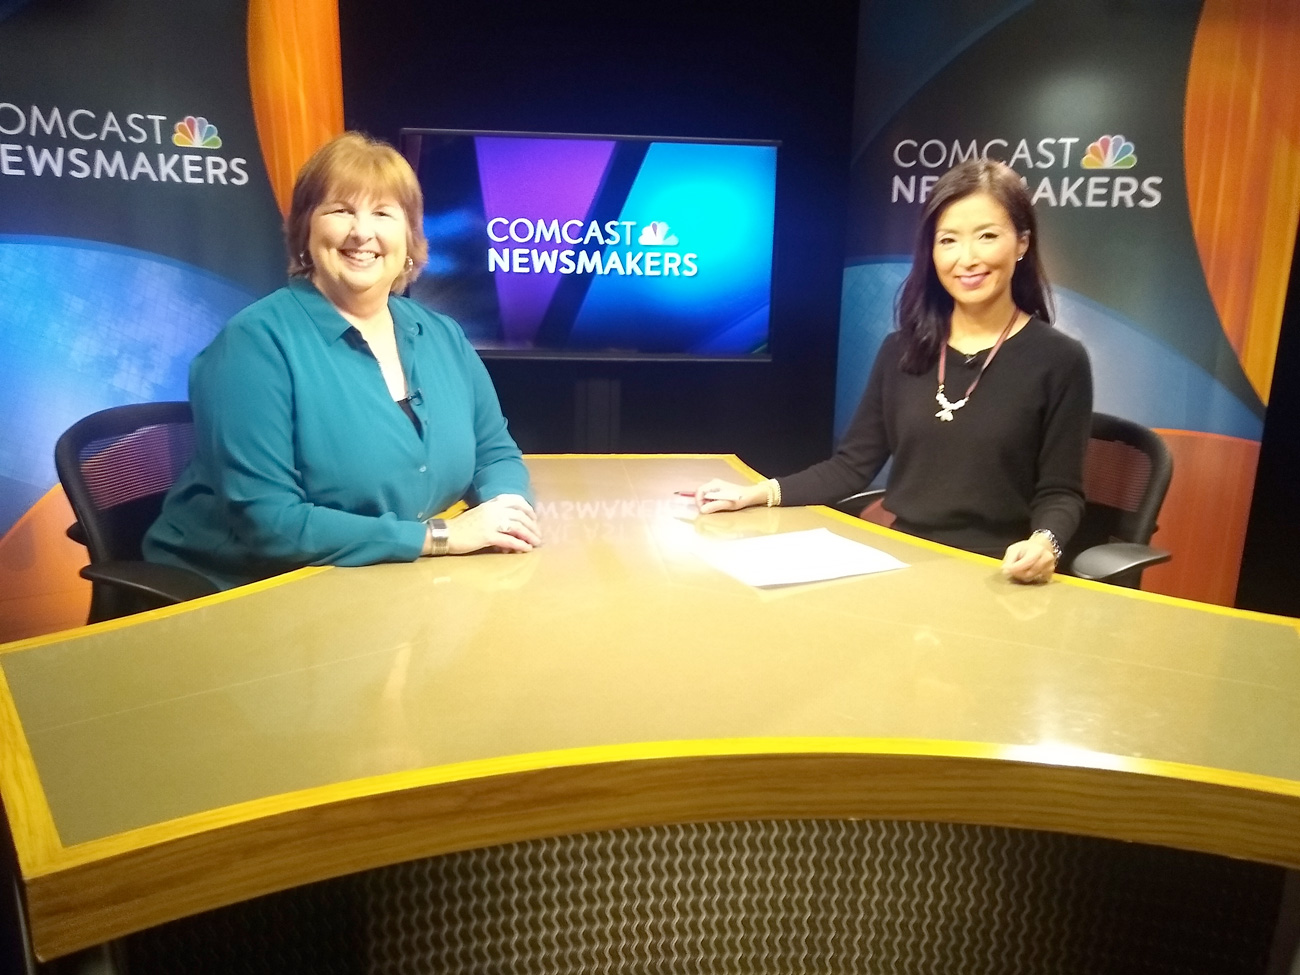 Comcast Newsmakers: All In For Kids